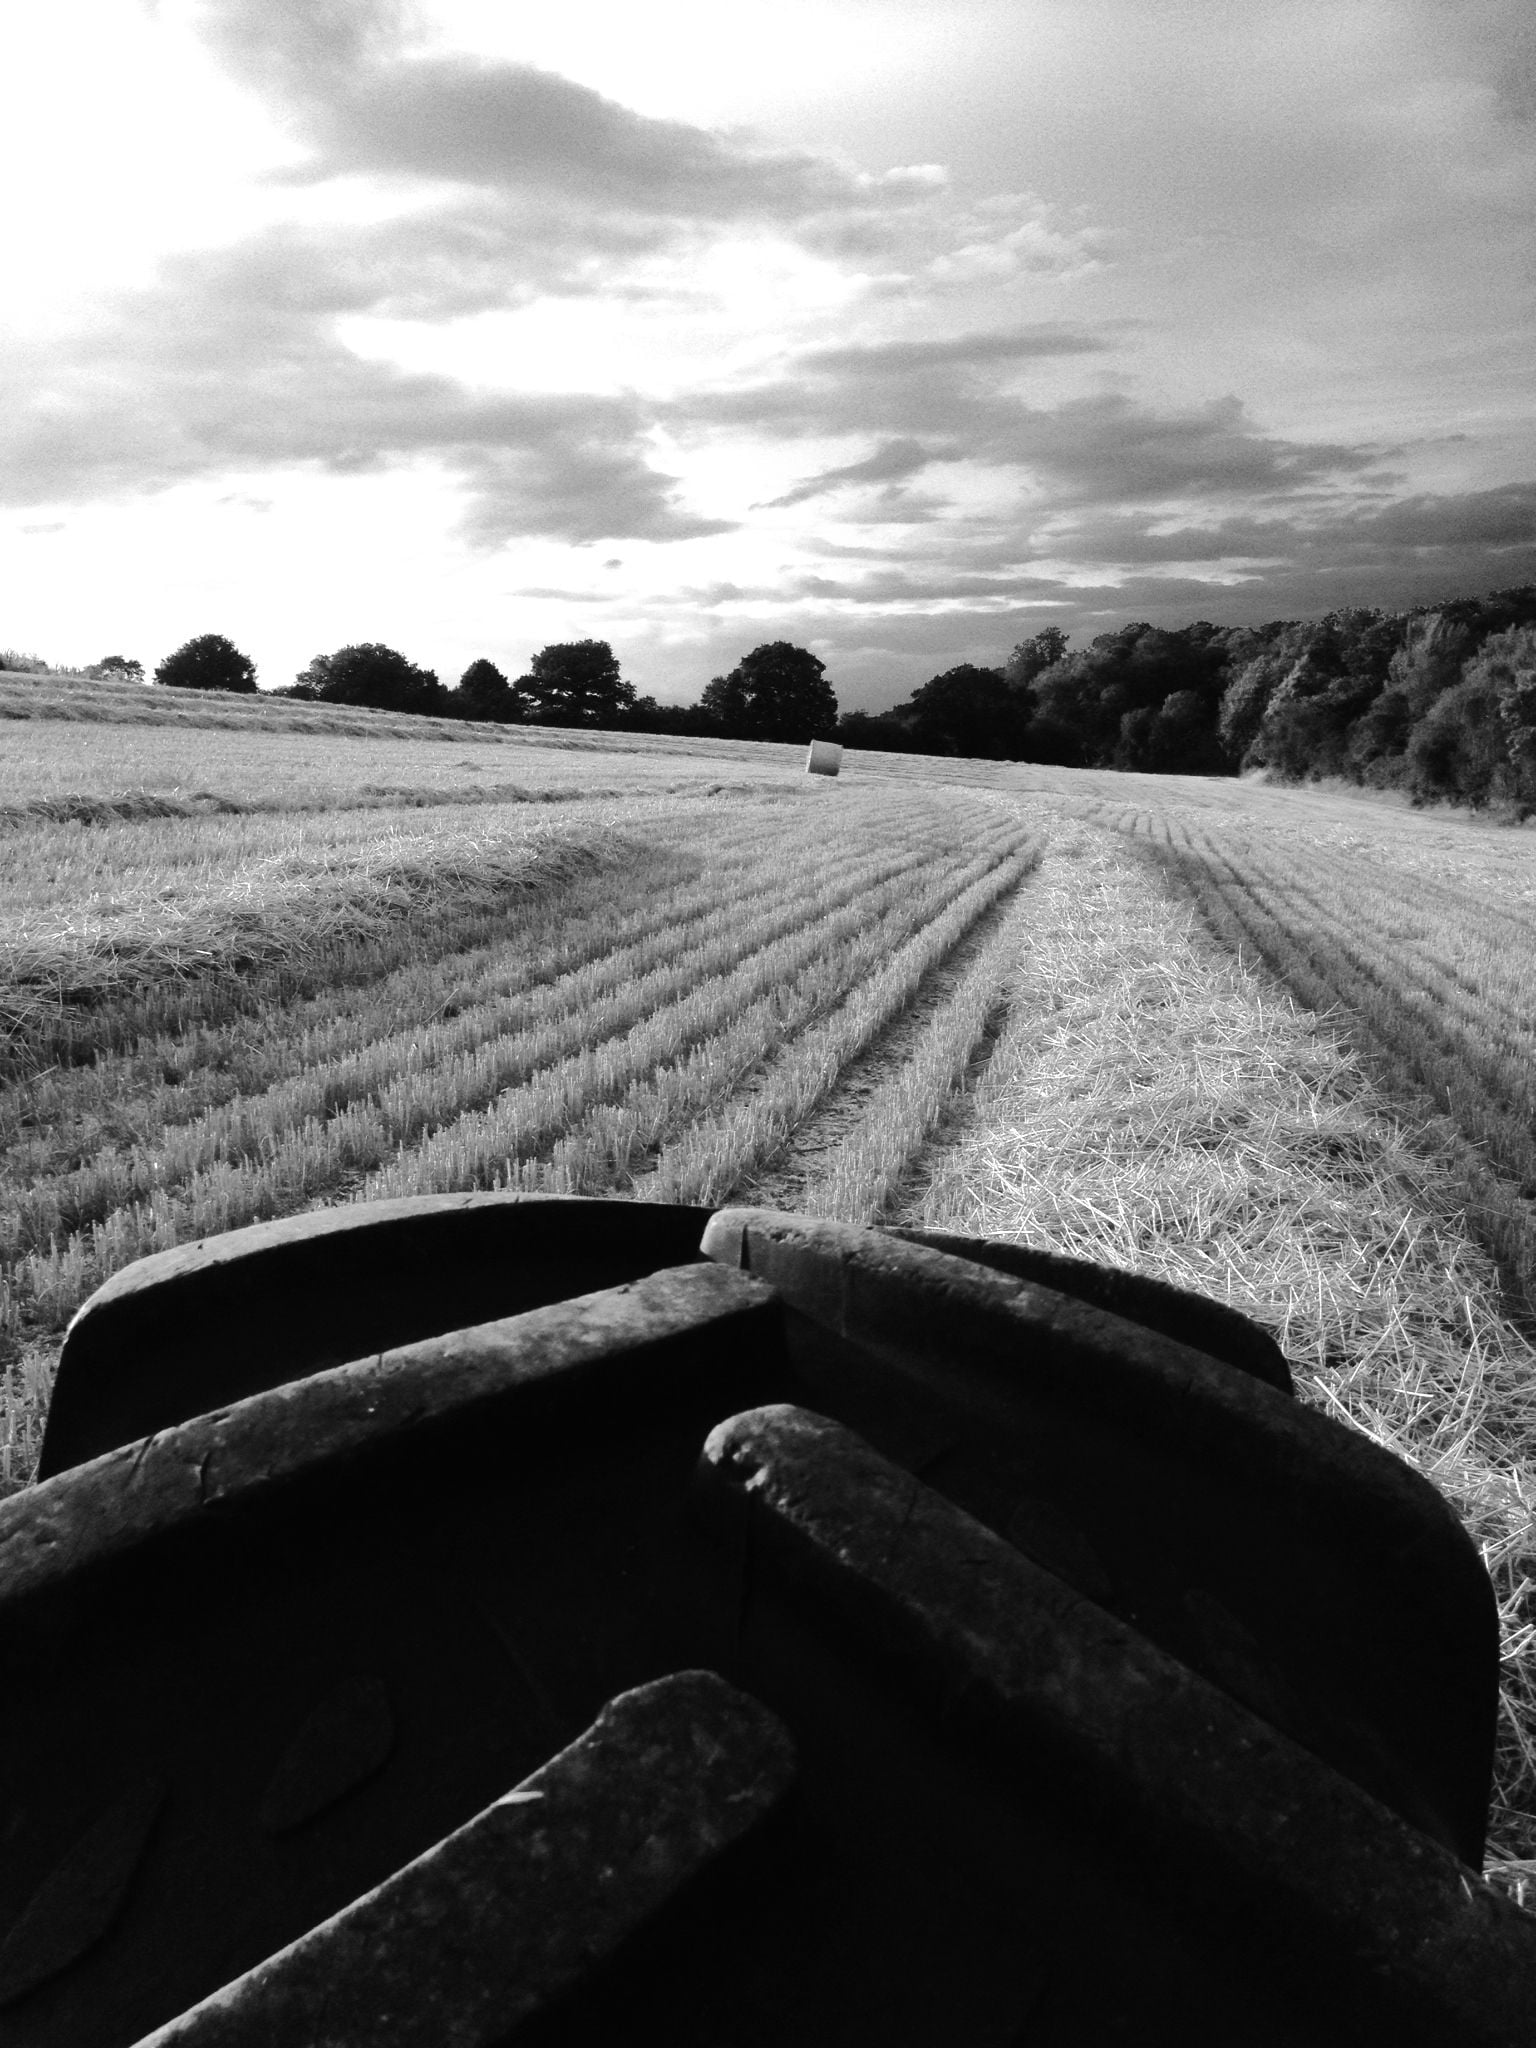 Baling by Pitchbury Wood